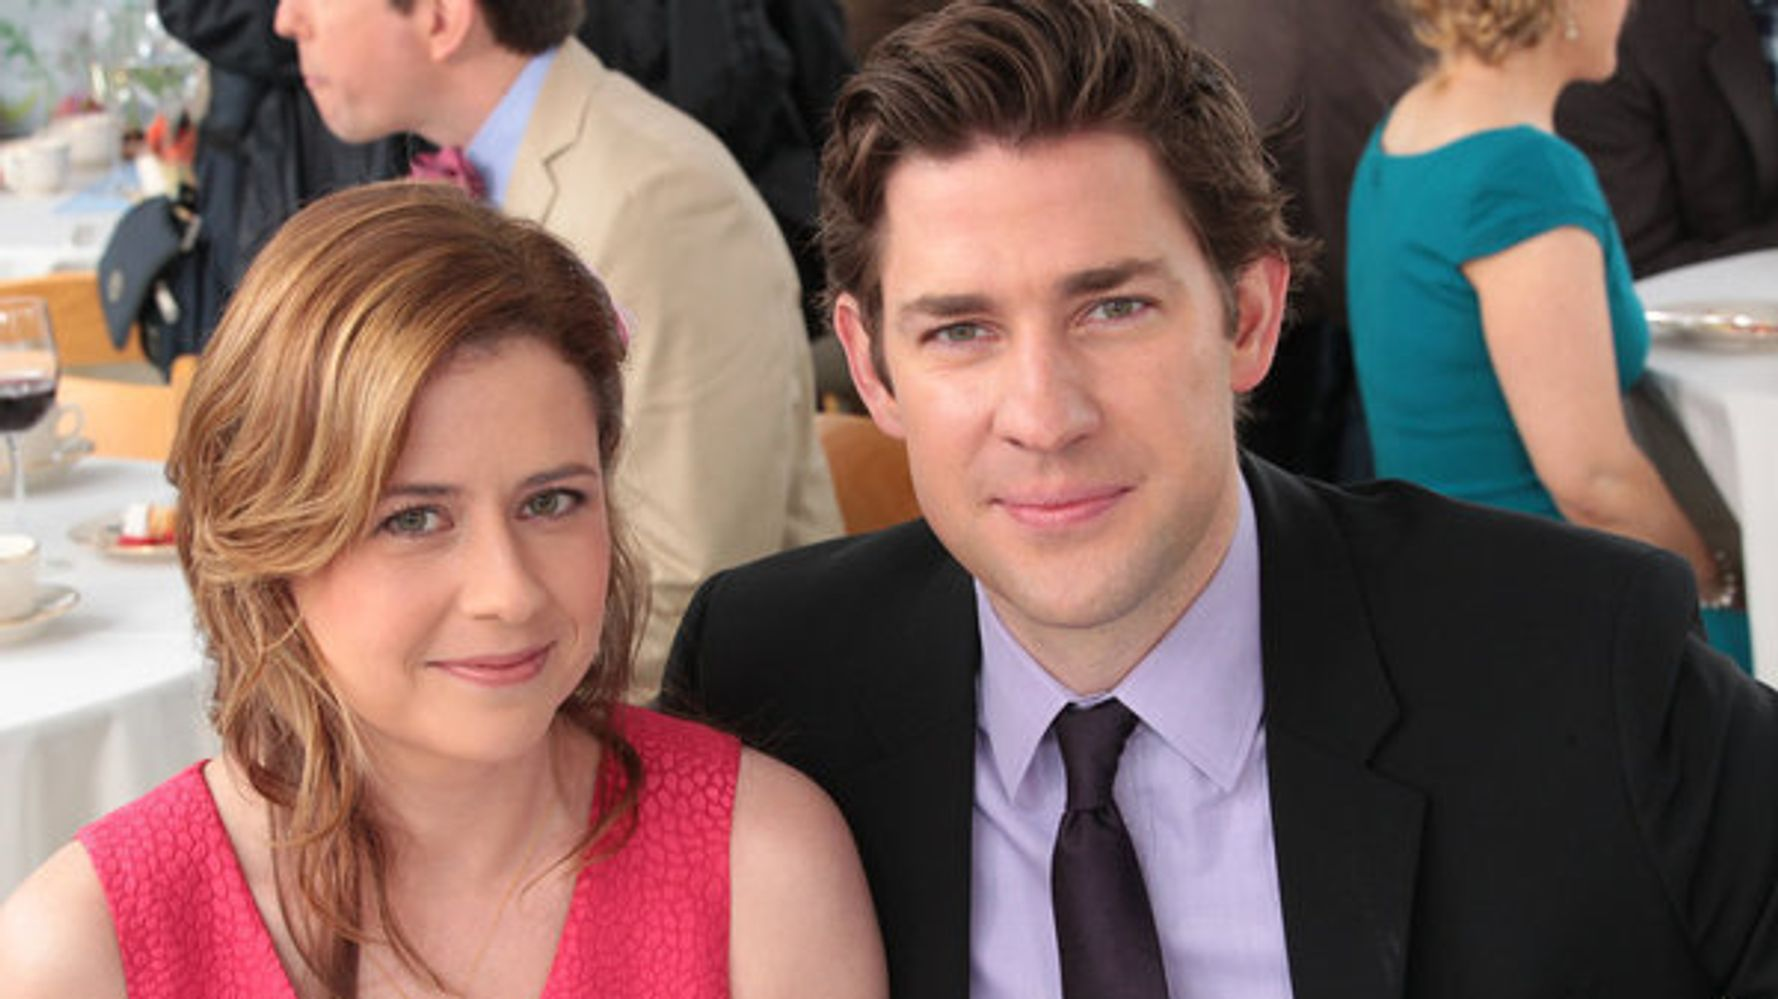 Jim And Pam Wedding.Jenna Fischer Reveals The Real Reason Why Jim And Pam Worked On The